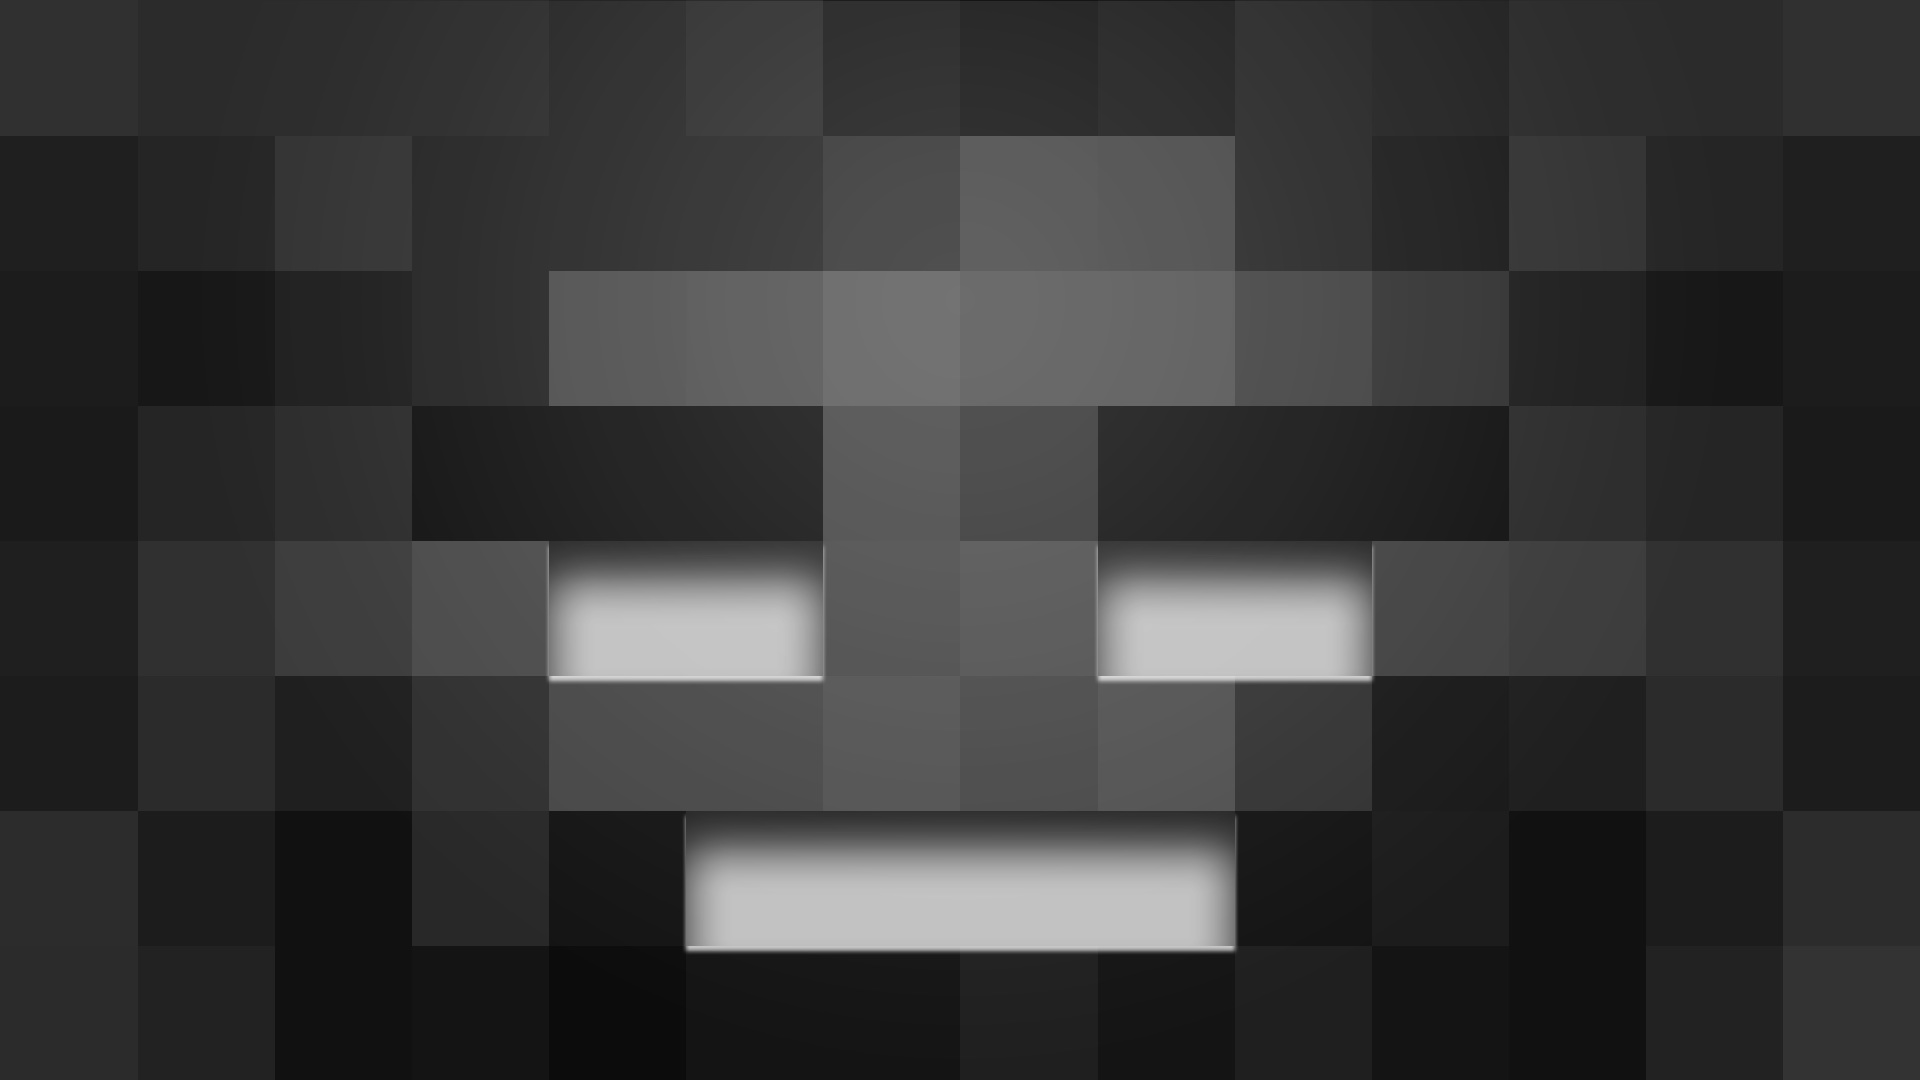 90 Minecraft Wither Wallpapers On Wallpapersafari